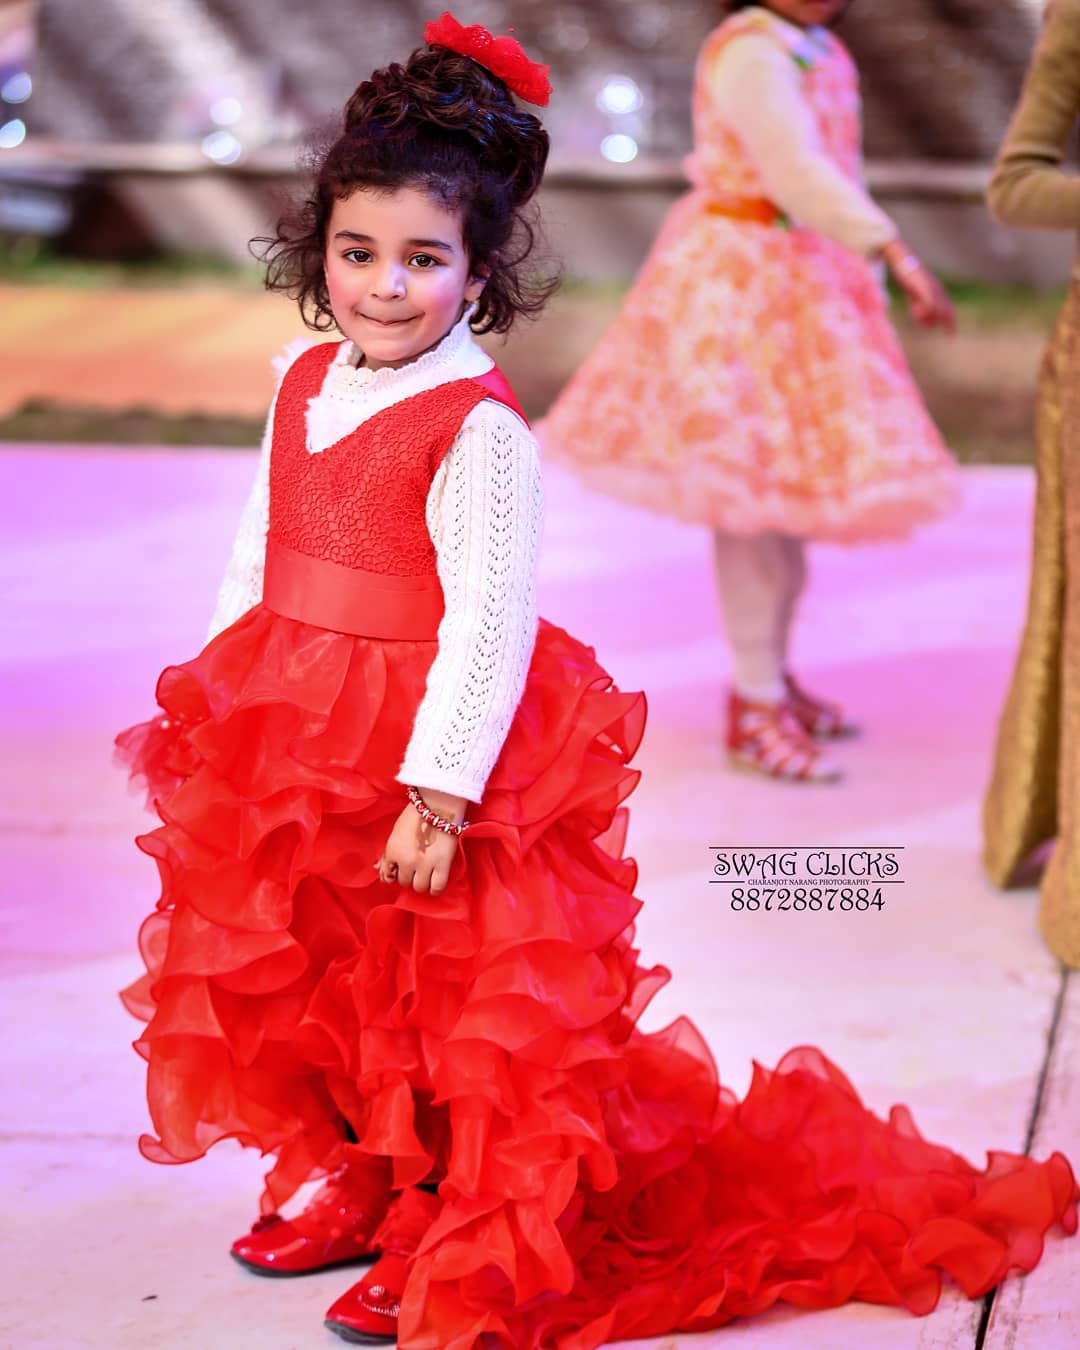 Little Girls Party Wear Dress & Gown Baby Girl Princess Dress Ideas for Memorable Photoshoot